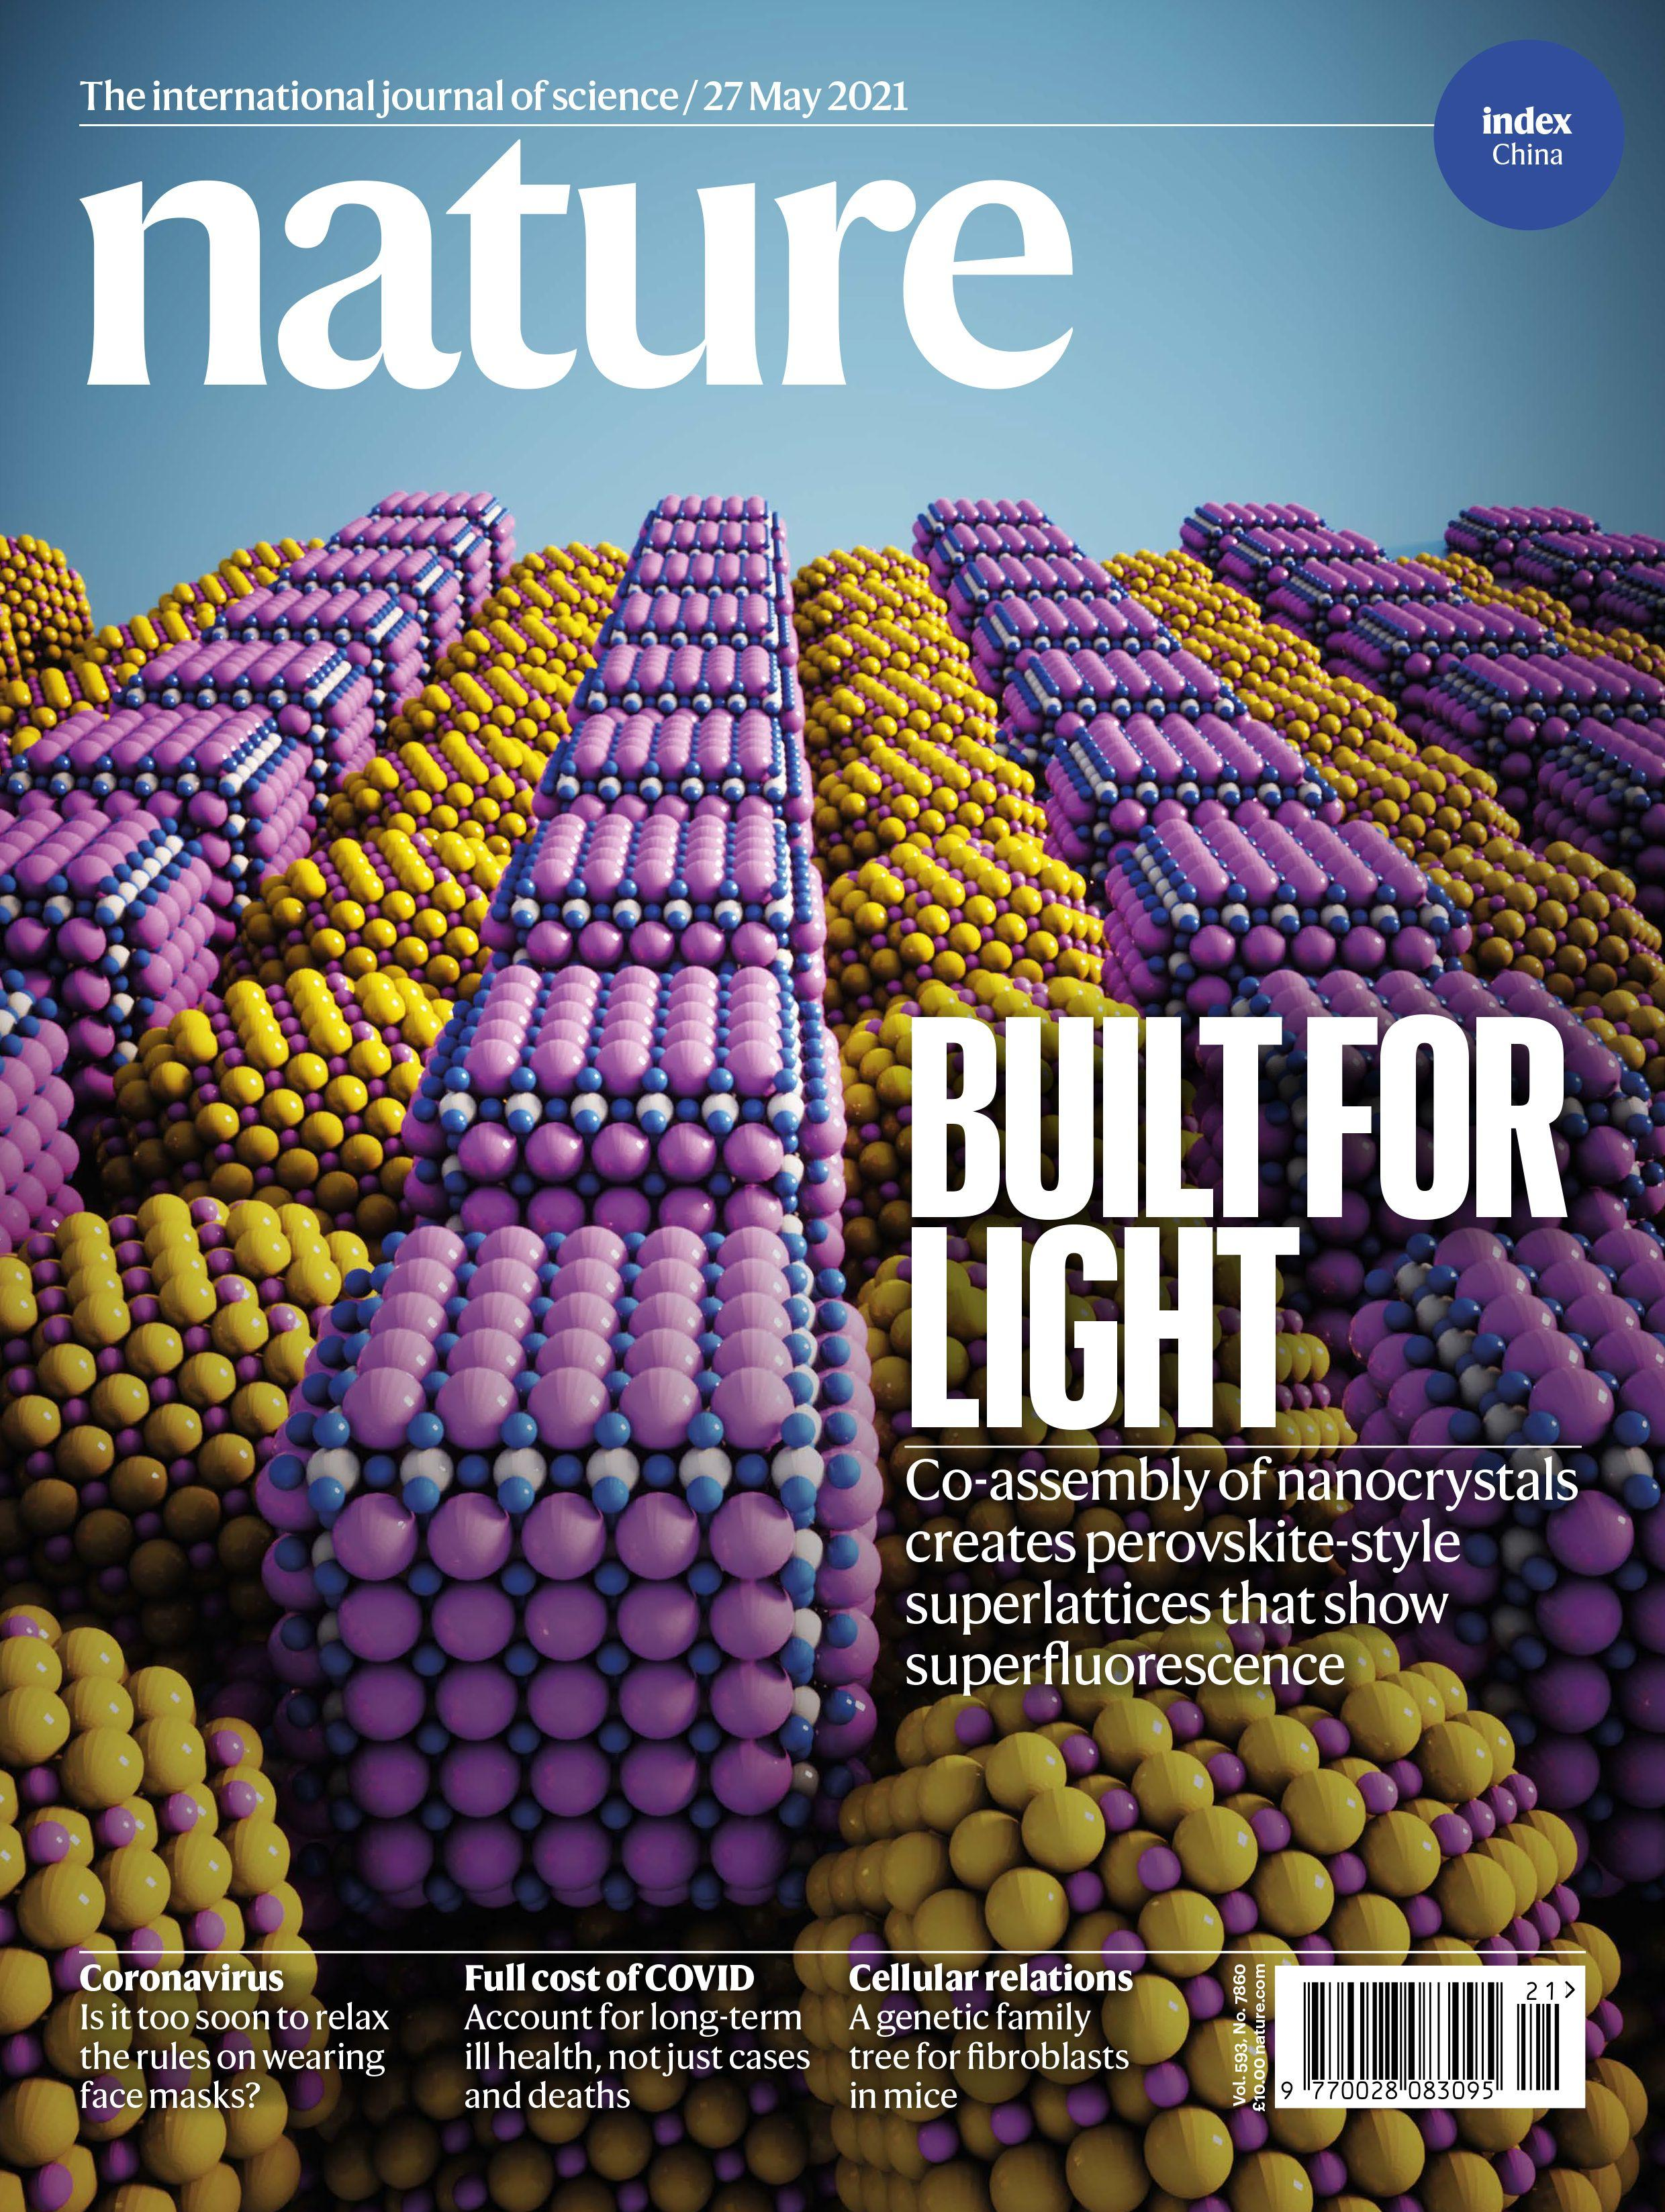 """May 27, 2021 issue cover story: """"Perovskite-type superlattices from lead-halide perovskite nanocubes"""" (Credit: Nature)"""